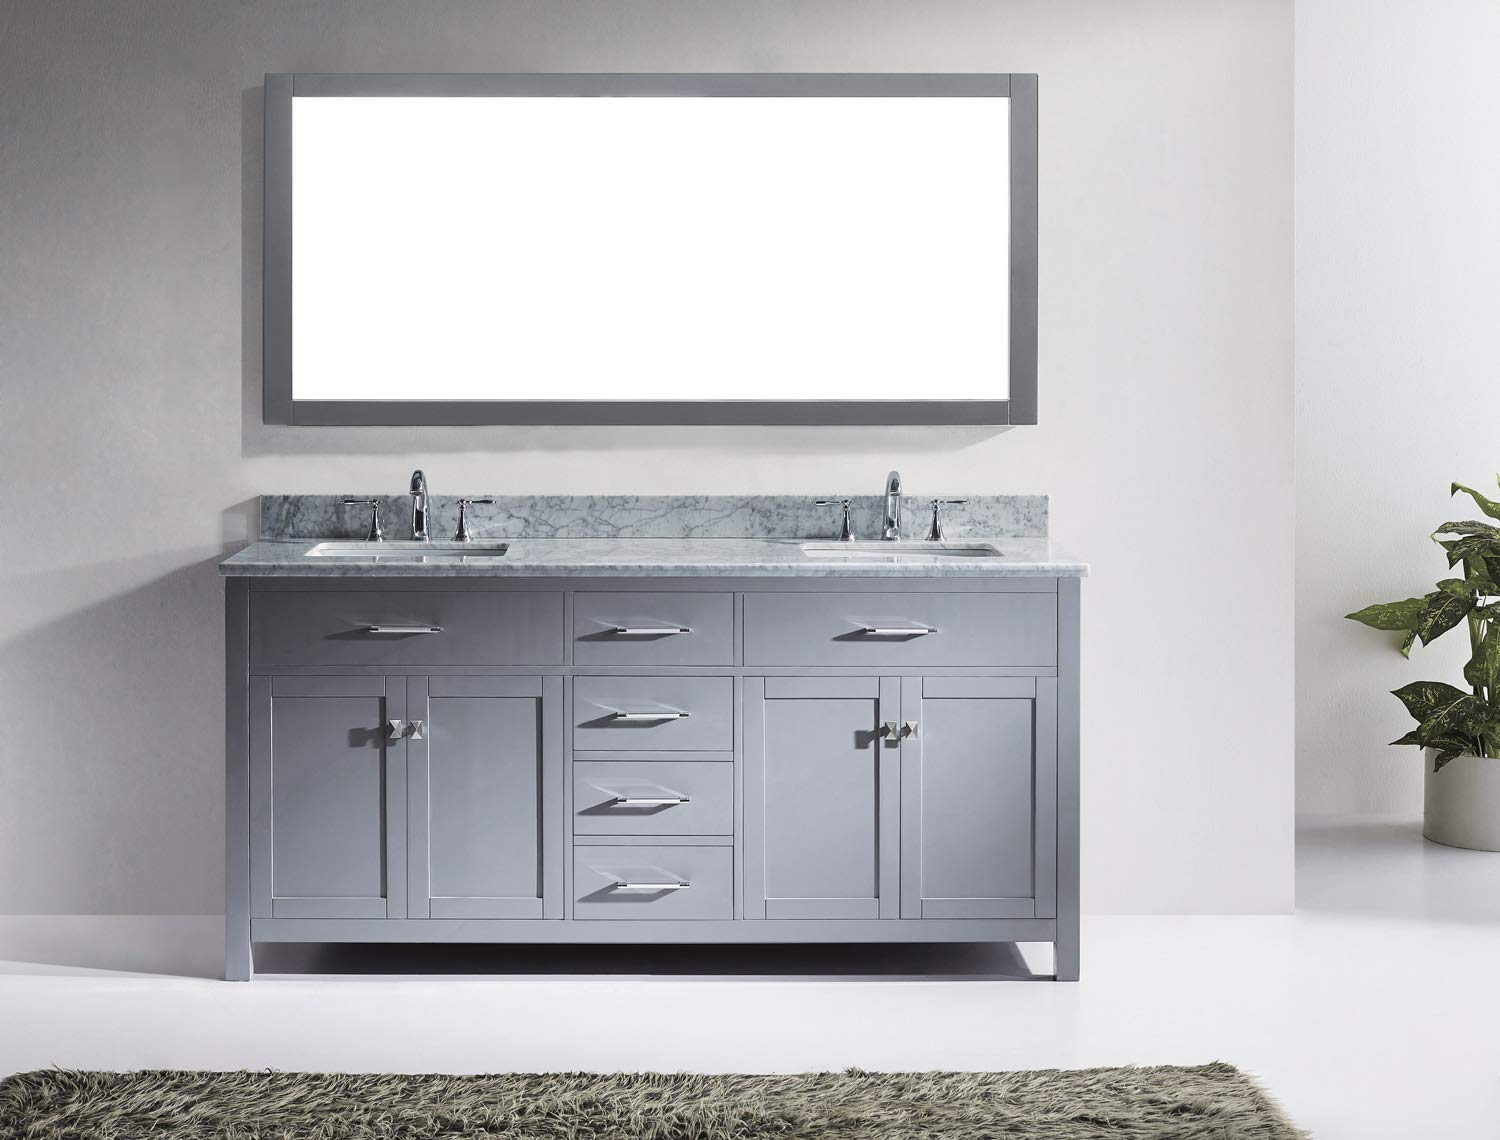 Virtu USA Caroline 72 inch Double Sink Bathroom Vanity Set in Grey w/ Square Undermount Sink, Italian Carrara White Marble Countertop, No Faucet, 1 Mirror - MD-2072-WMSQ-GR